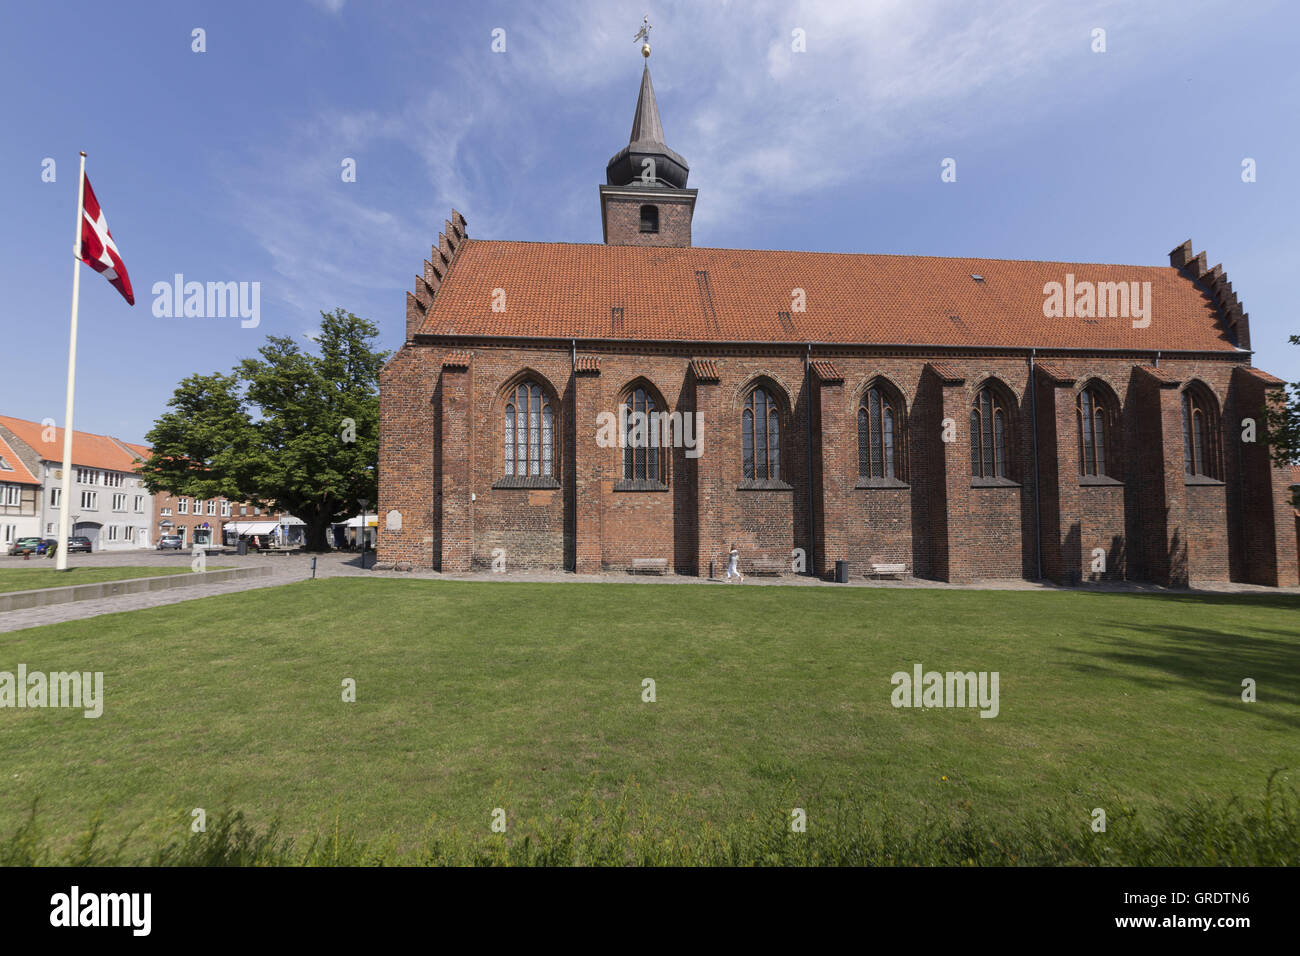 Monastery Church Of Nykobing With Great Grassy Area In Front Of And Next To National Flag - Stock Image